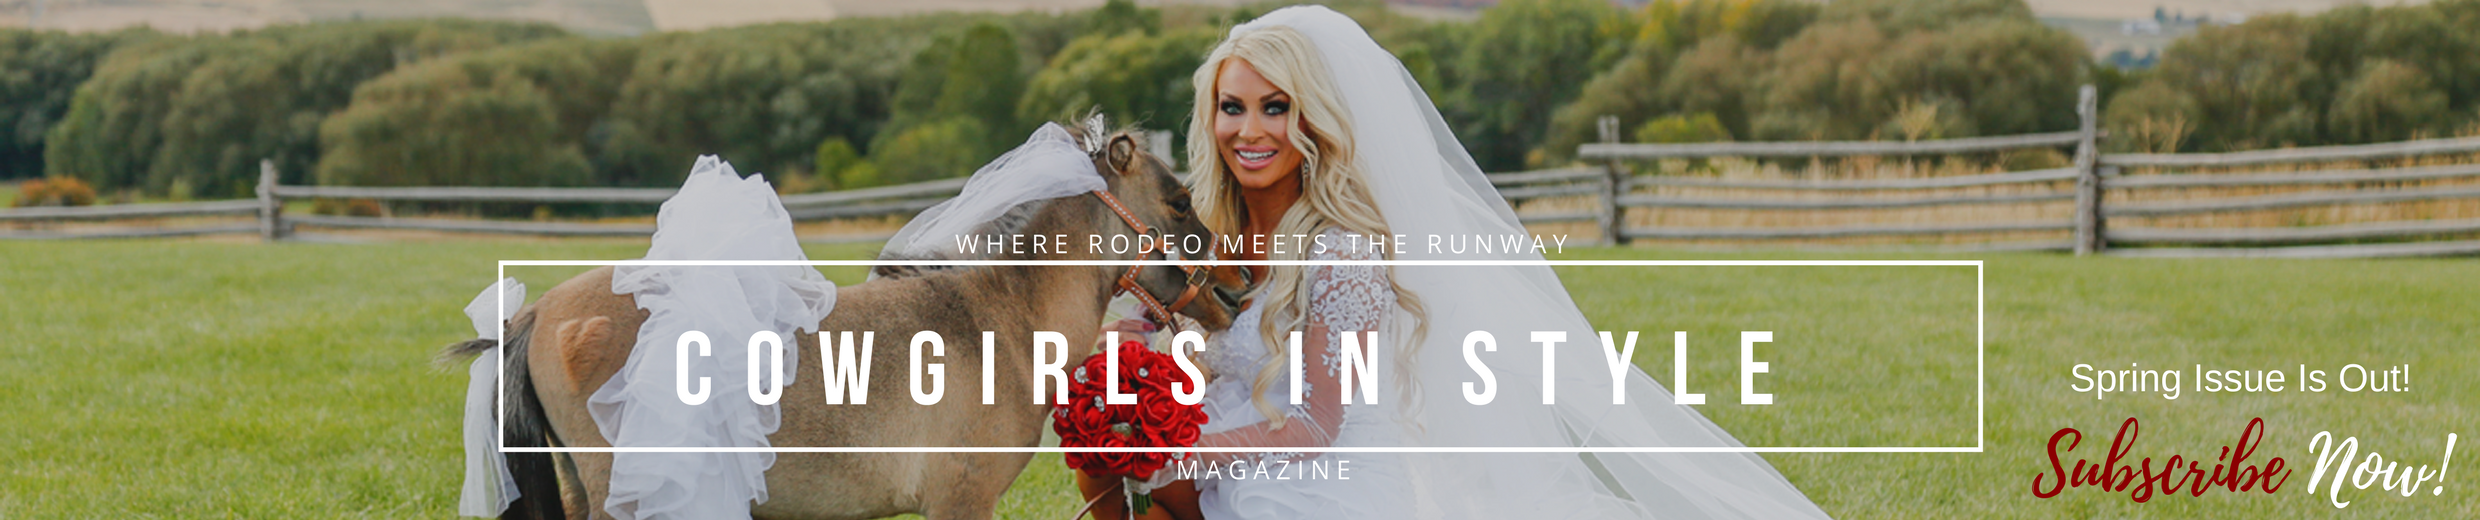 Former Miss Rodeo Arizona, Taci Howe Graces the Cover of CIS Magazine - Cowgirls In Style Magazine